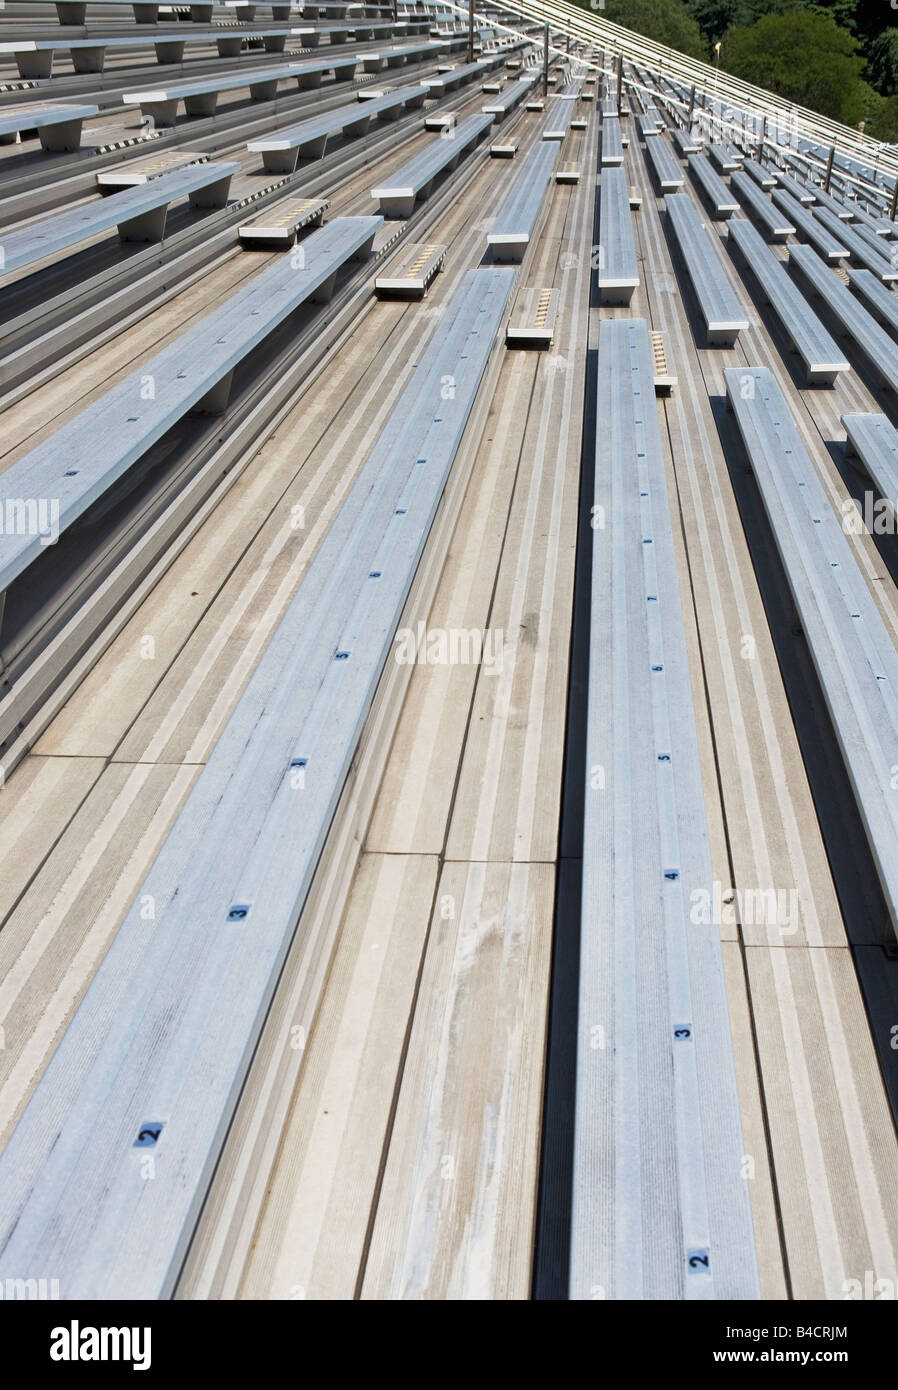 BLEACHER,, SPORTS,, STADIUM,, EMPTY,, EMPTINESS,, FURNITURE,, BENCHES,, ARCHITECTURE,, REPETITION,, SPORTS,, STADIUM,, - Stock Image